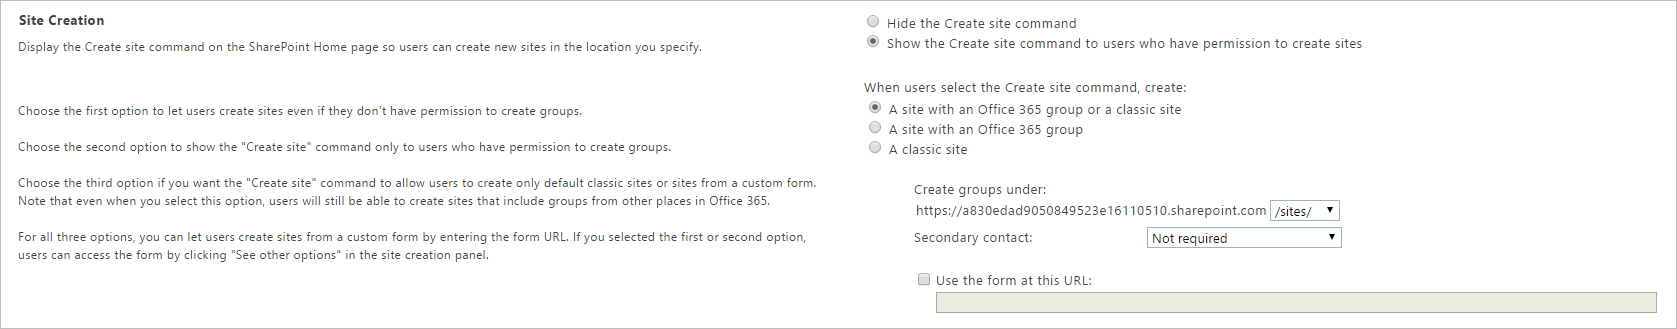 create-connected-sharepoint-online-team-sites-in-seconds-3